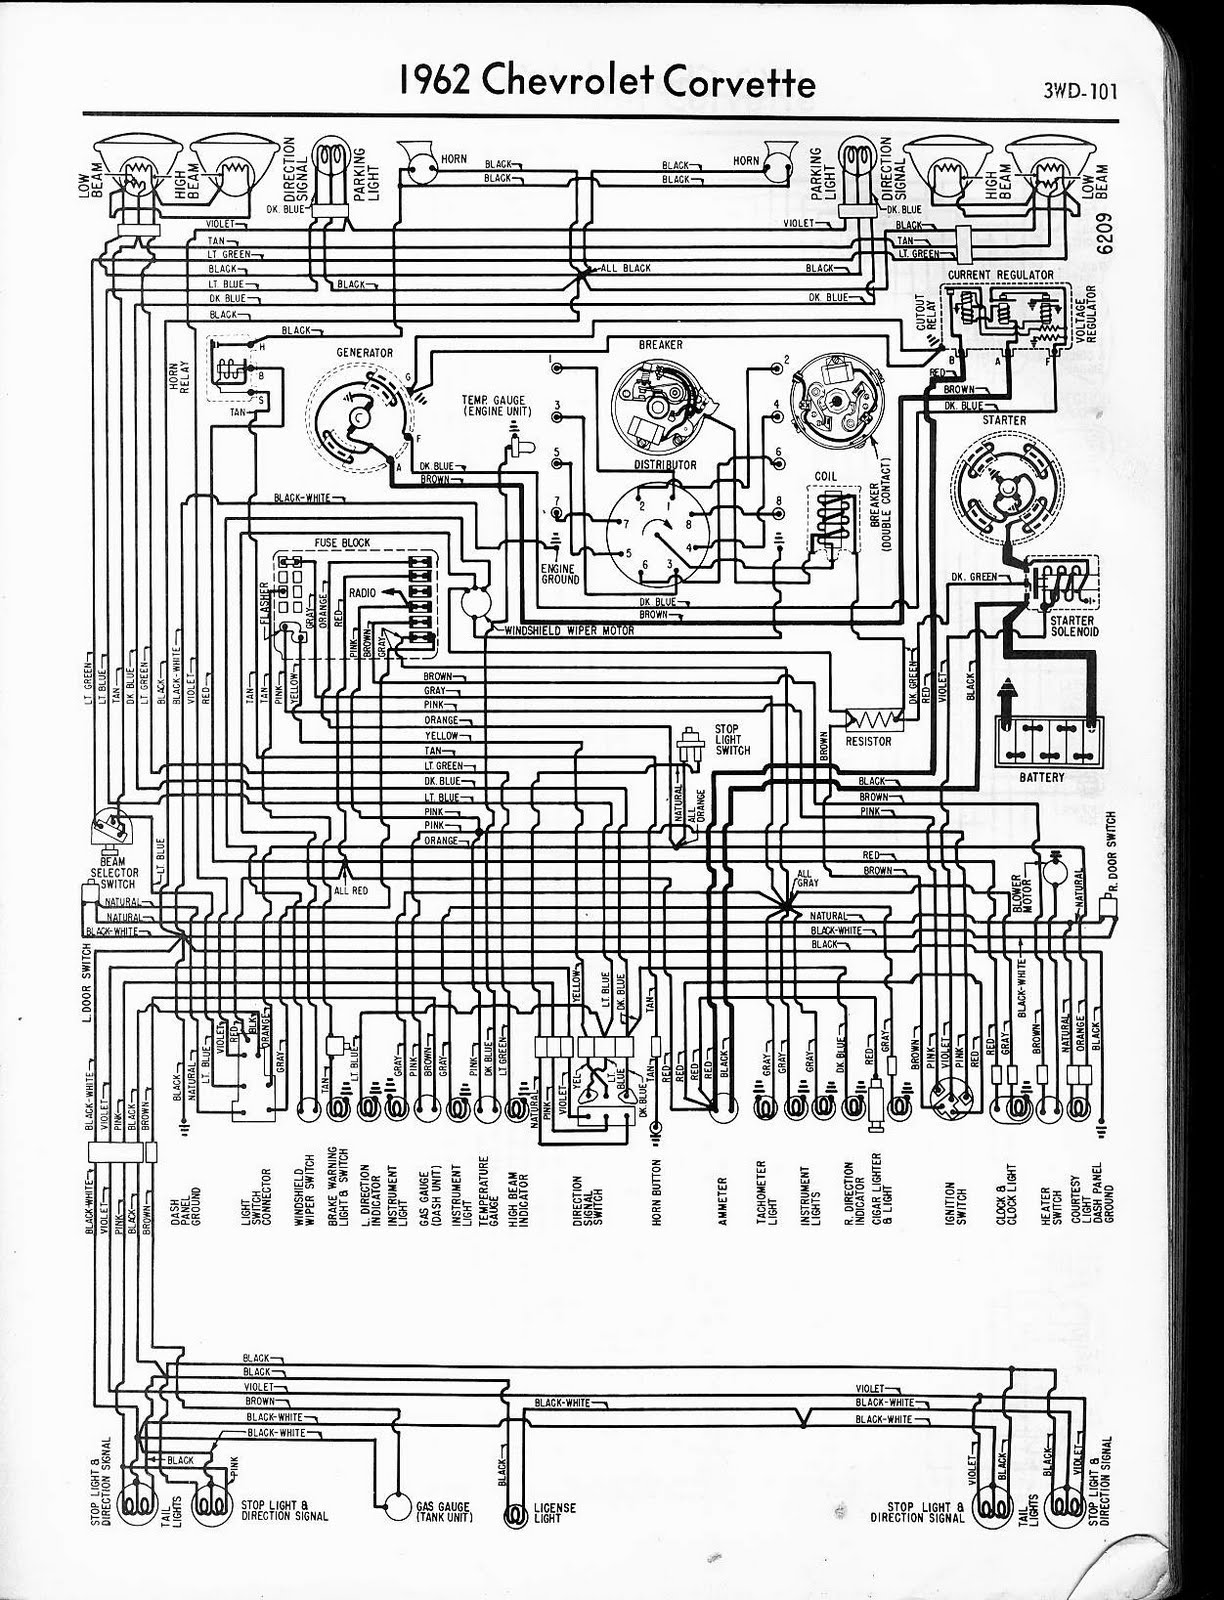 1976 Corvette Dash Wiring Diagram Fight Or Flight Stress Response 1965 Instrument 13 11 Kenmo Lp De Schematic Library Rh 69 Wibovanrossum Nl Wiper Motor